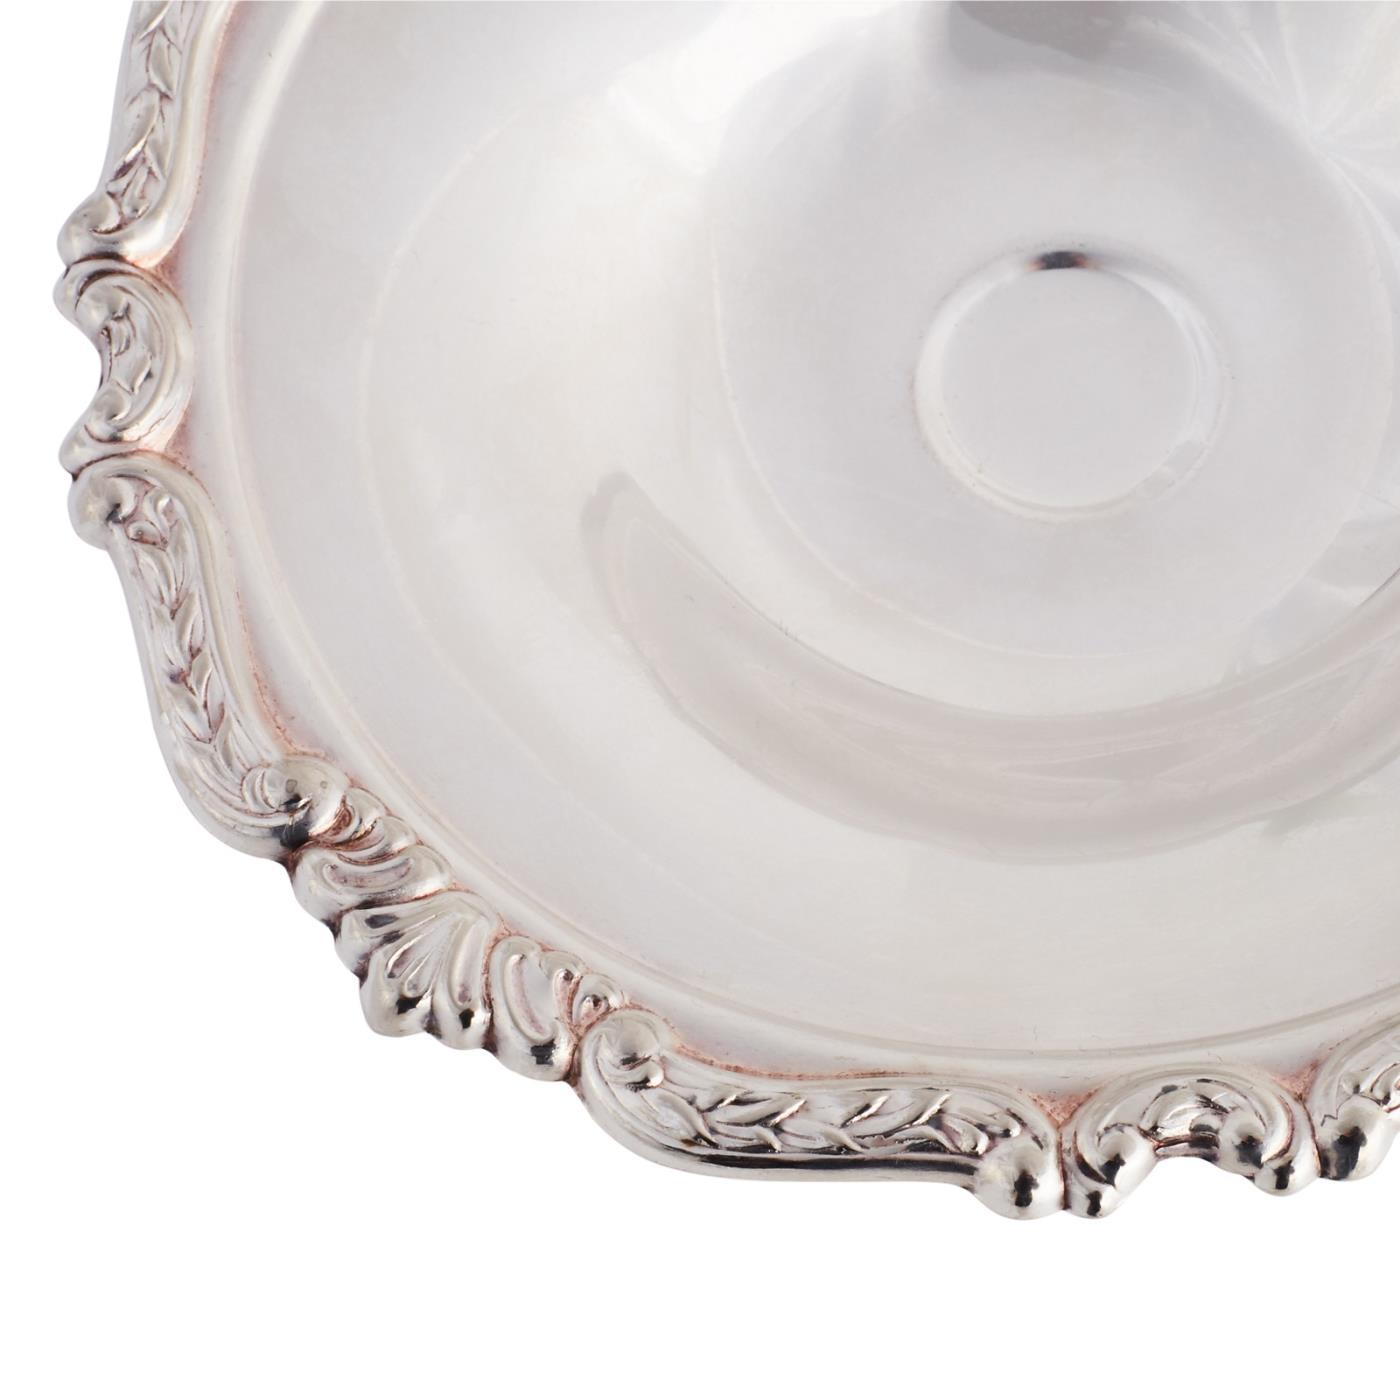 Candy Dish Detail